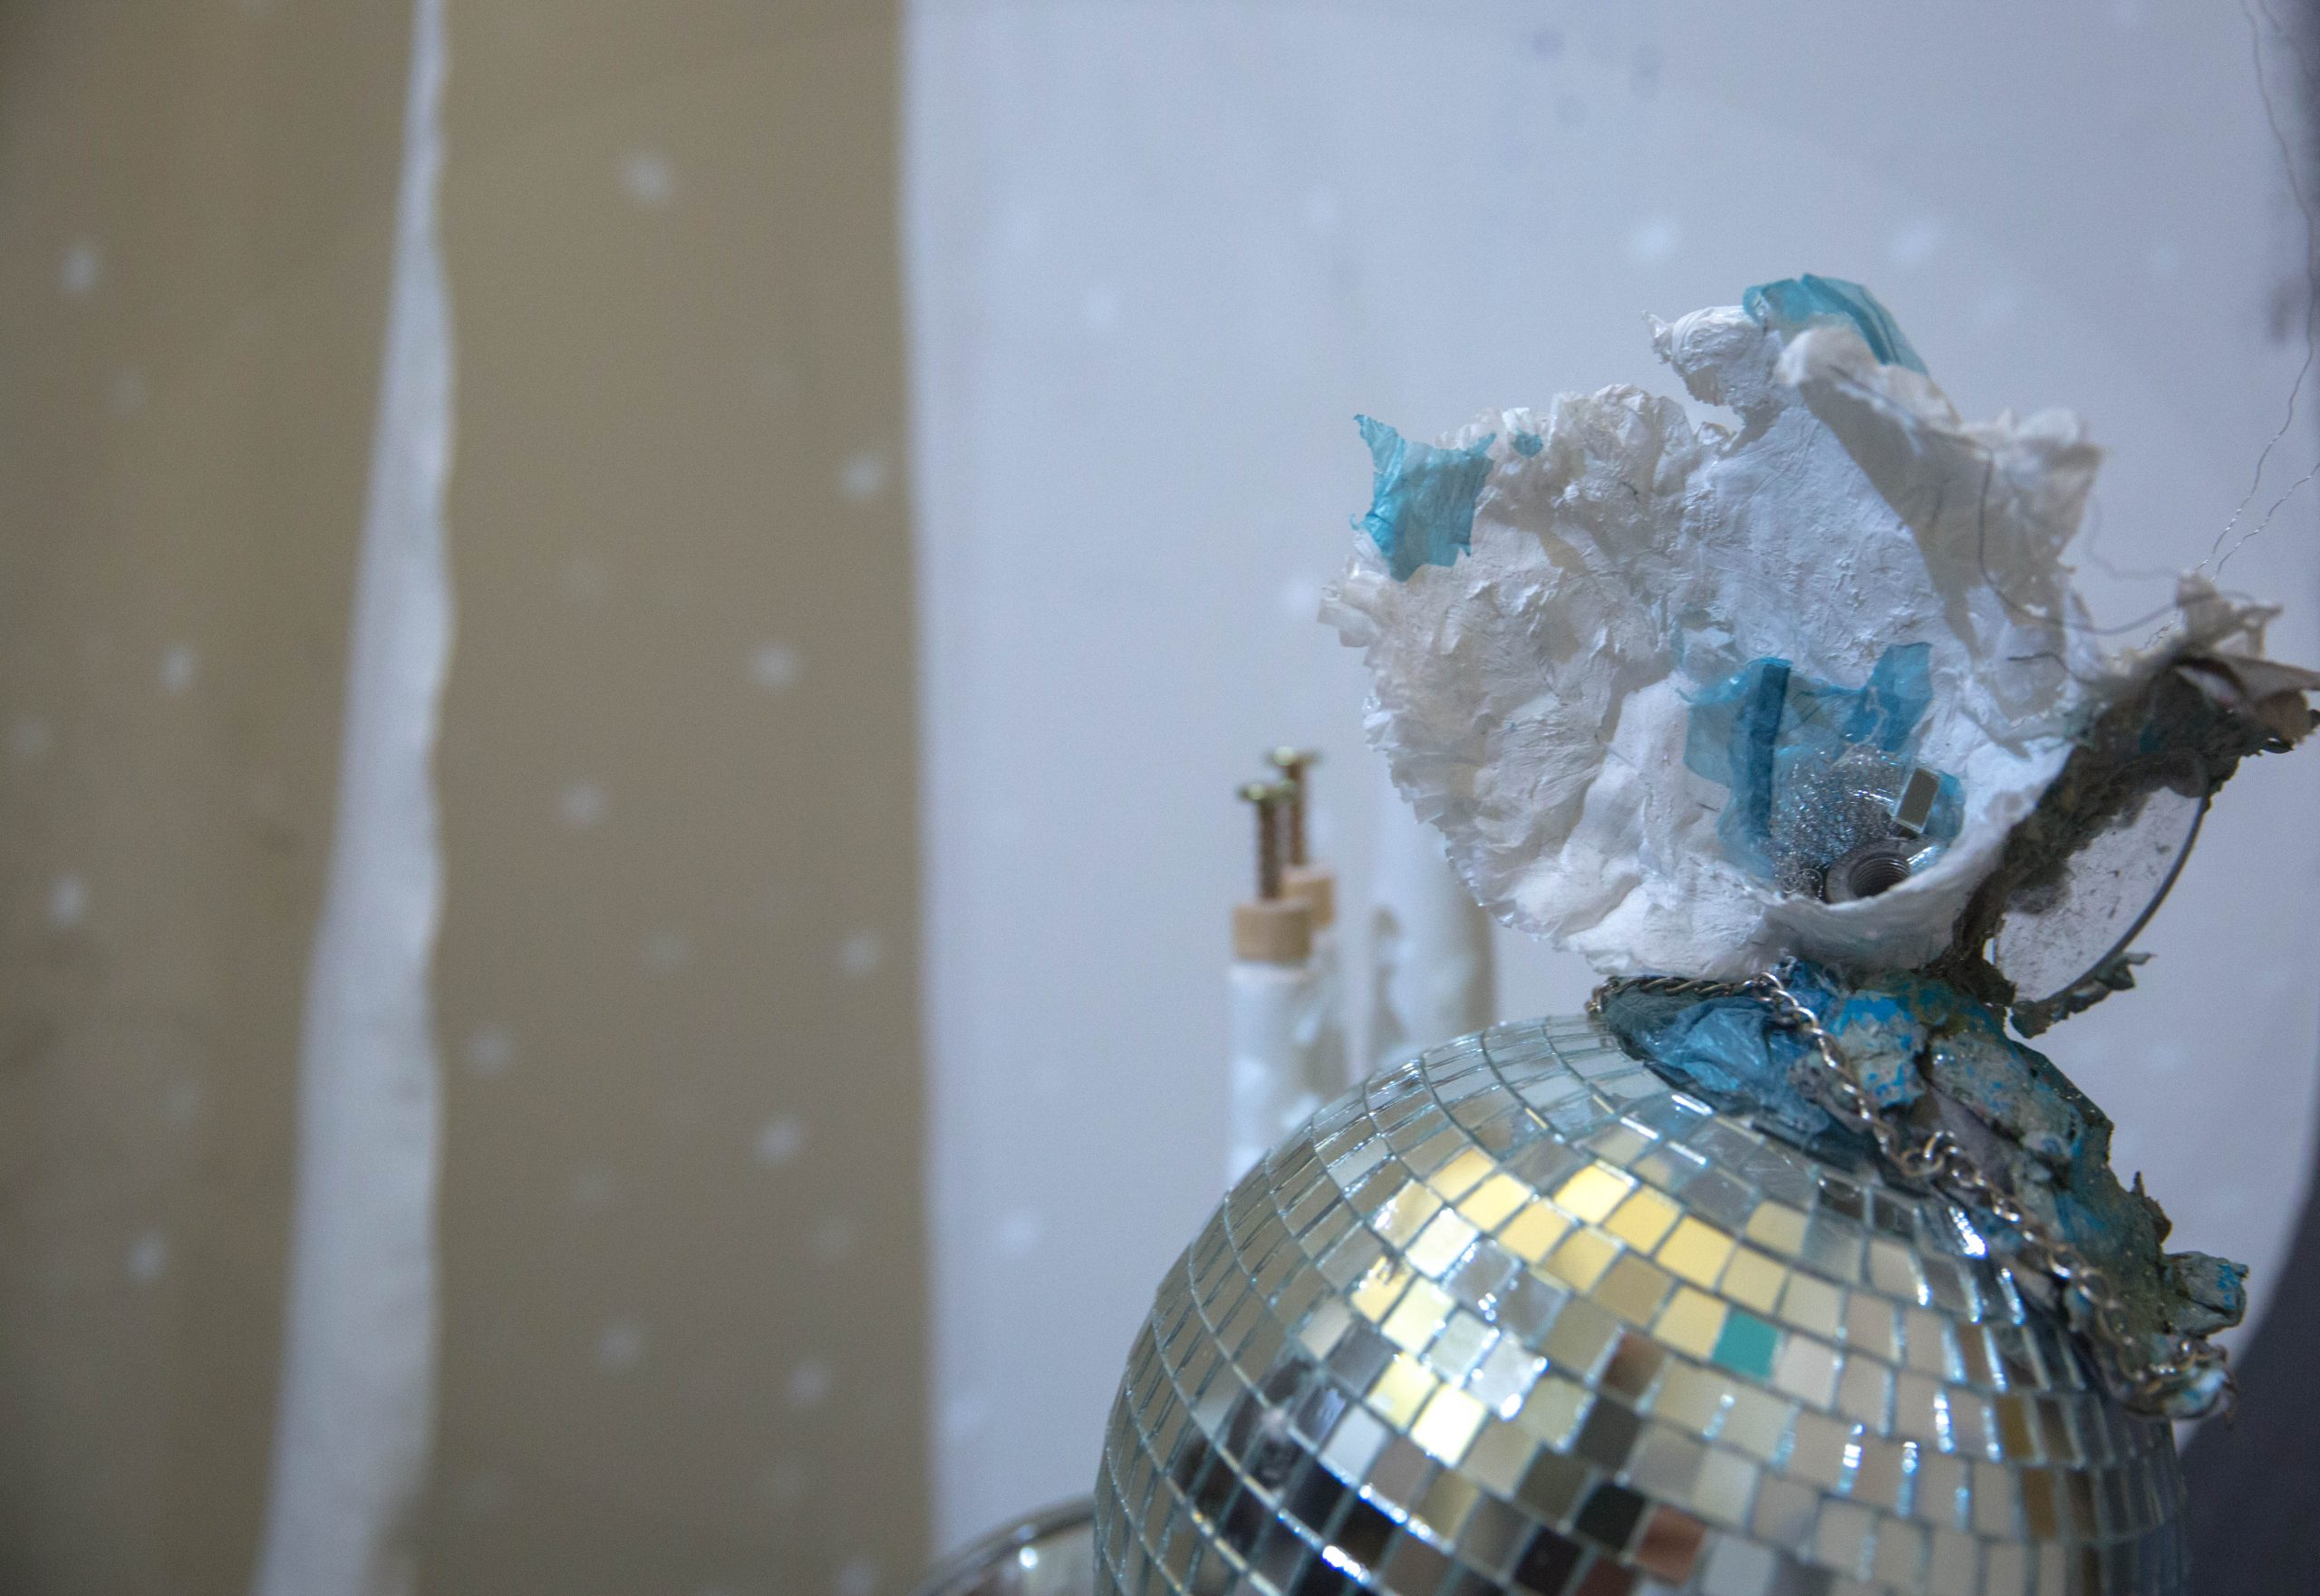 "Globus Purgamentum, 2016, Disco ball, paper pulp, lens from glasses, chain, plastic bags, wire, approx. 12"" in height and 22.5"" in diameter."